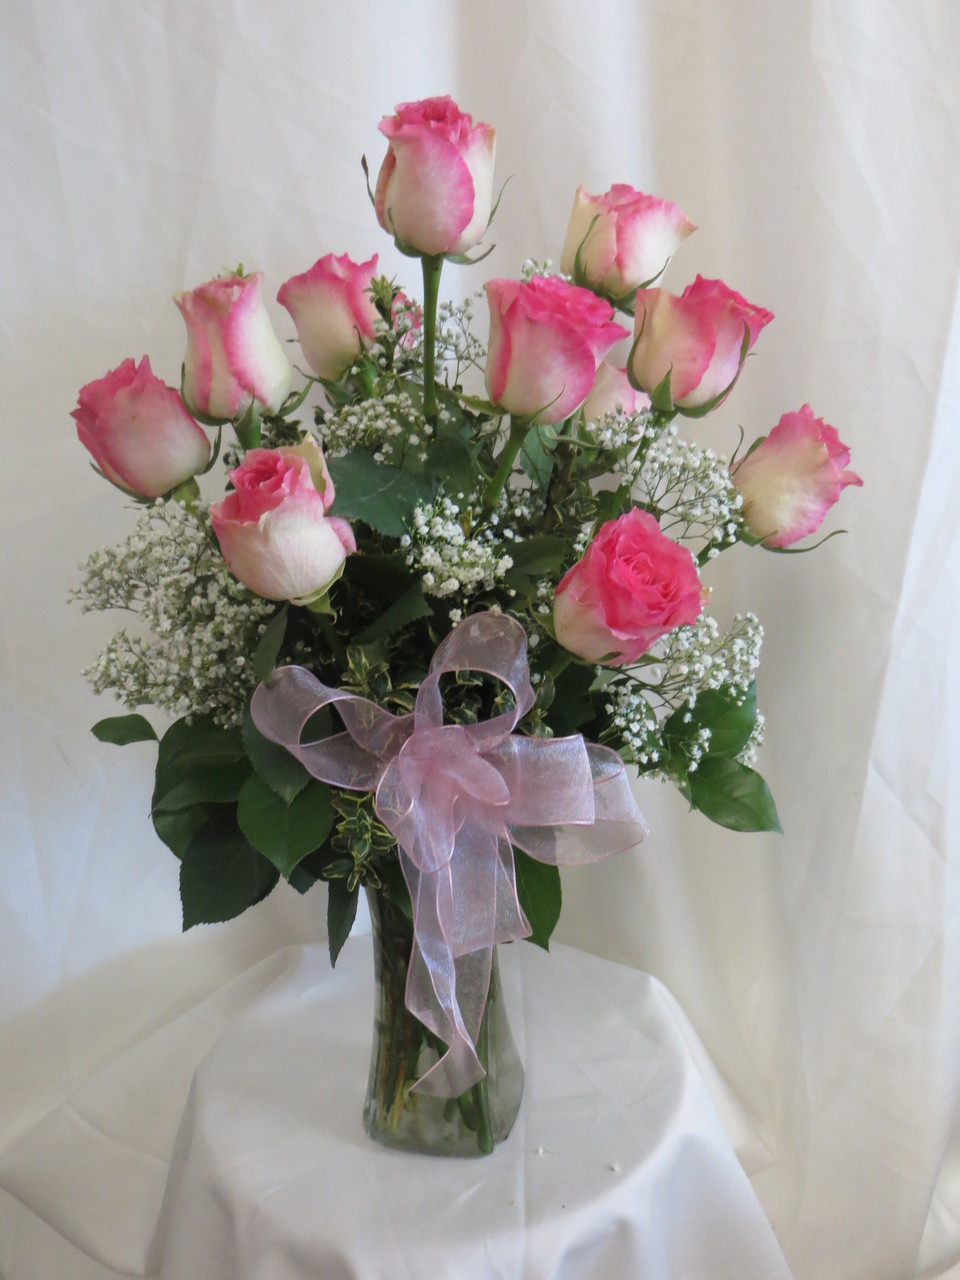 Beautiful Vase Of Pink And White Roses For Delivery By Flower Shops